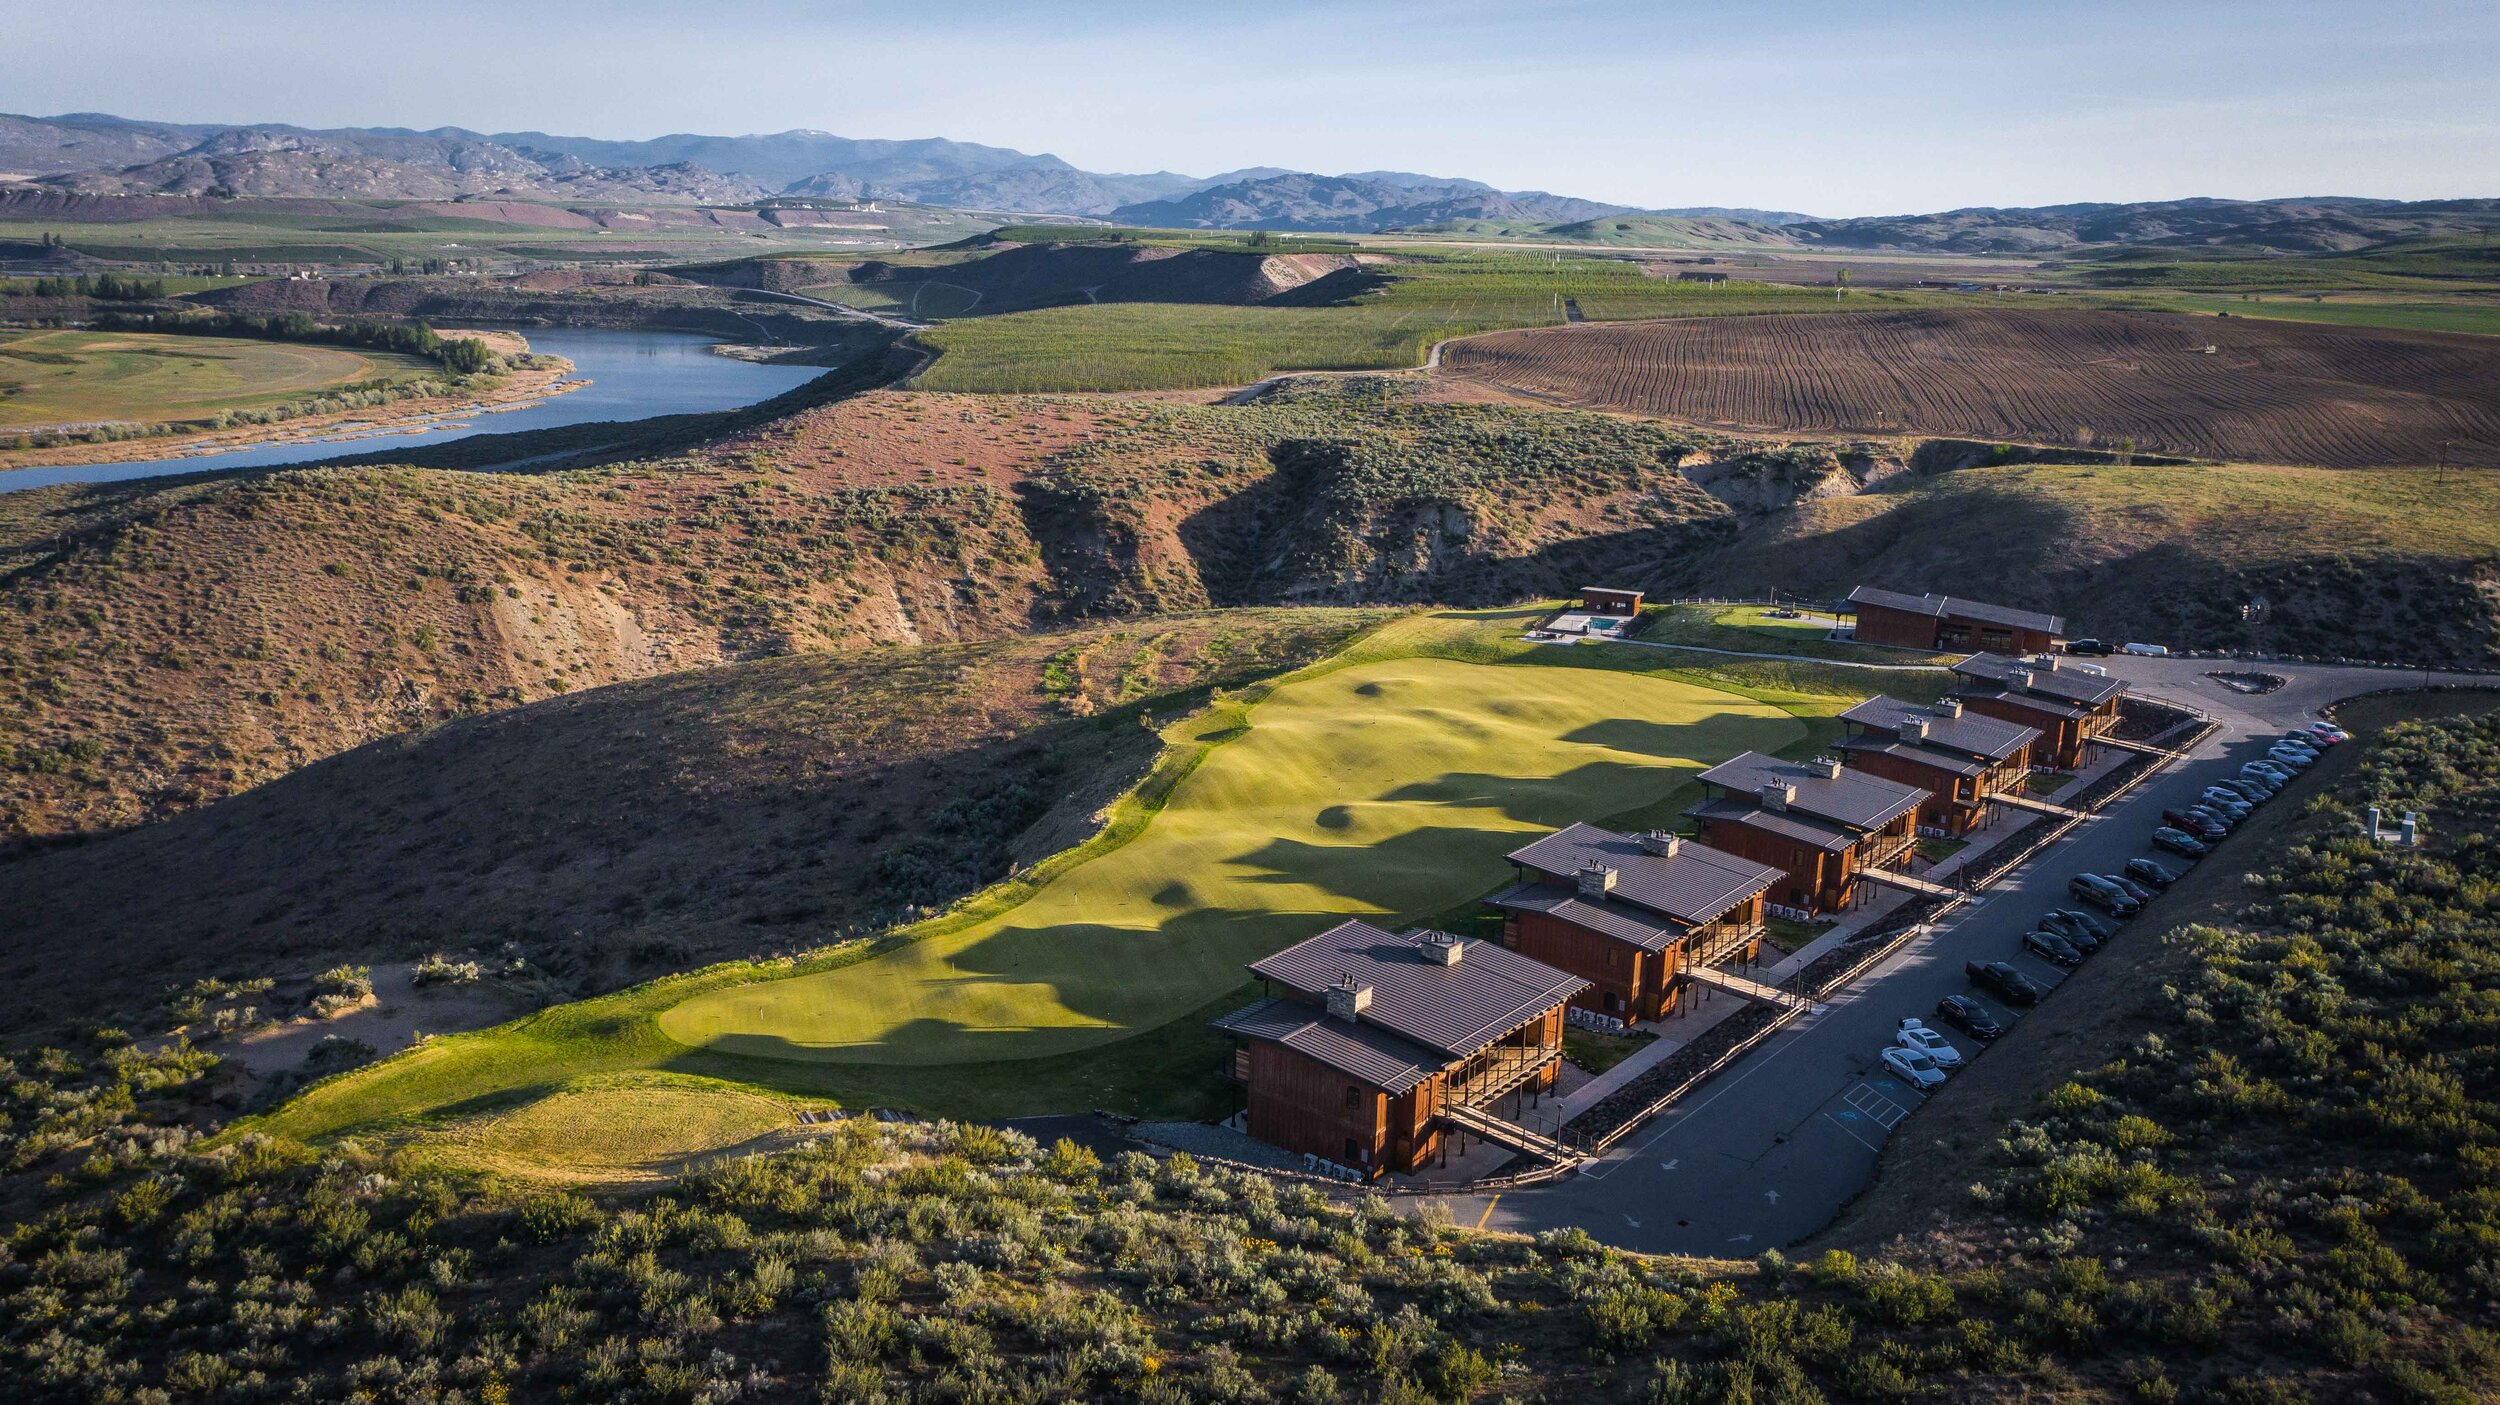 The newly established golf cottages at Gamble Sands overlook the Cascades putting course.